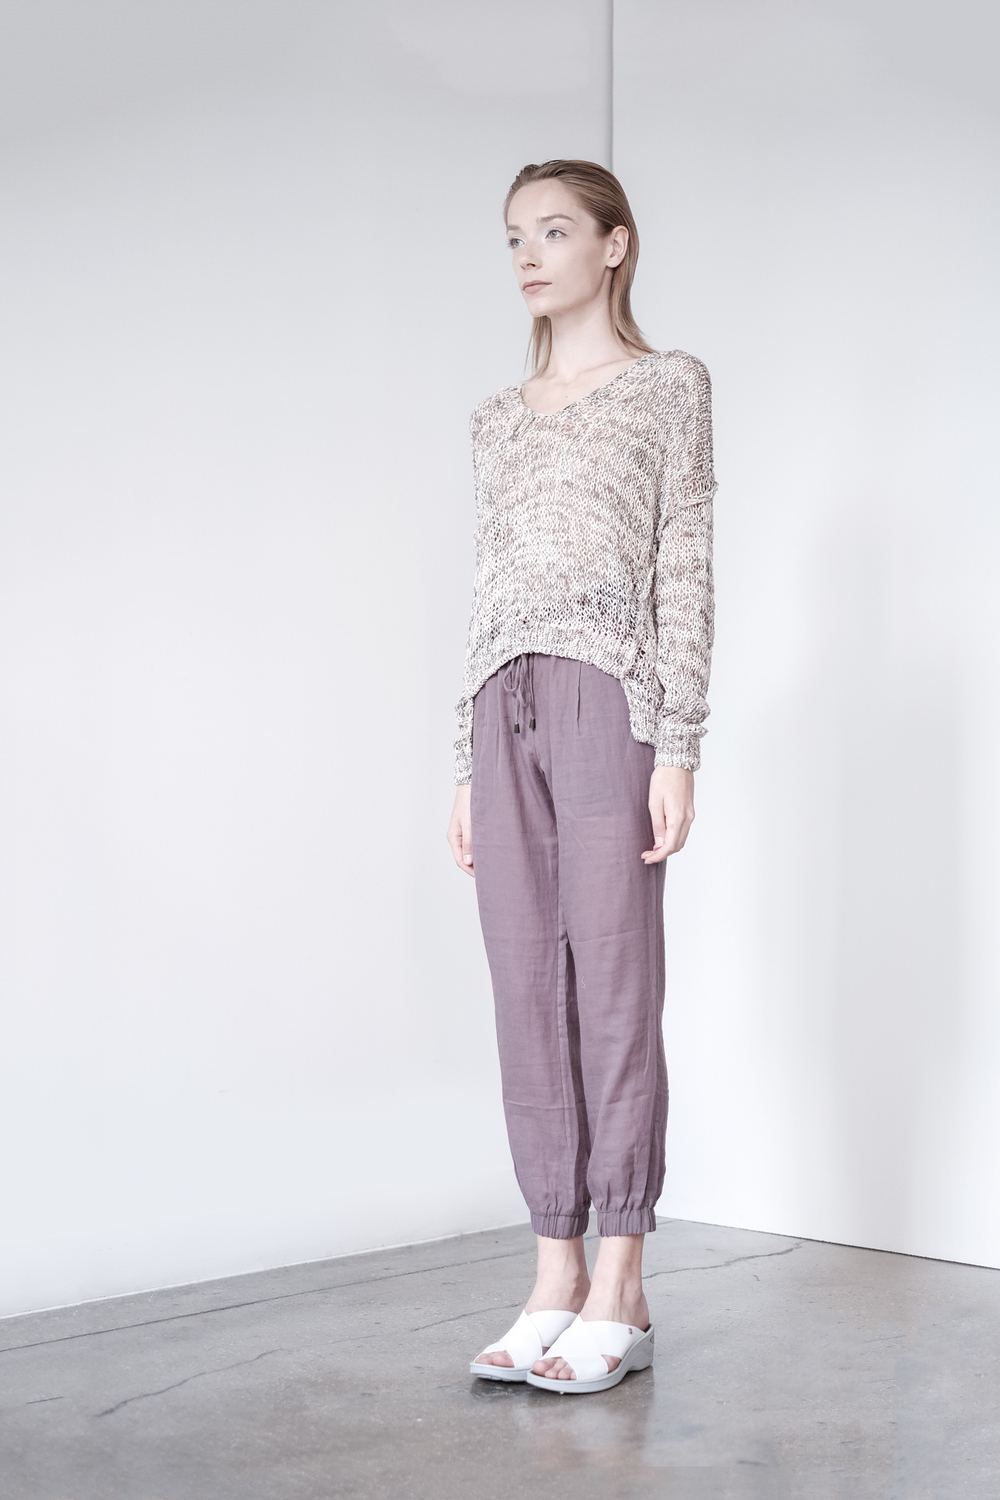 LOOK 20   TOP:   2299  / Marled Timber  -     Kate open knit slouchy pullover, in printed cotton, nylon.   BOTTOM:   2290  / Cinder  -   Jogger pants in 100% Cotton woven dbl. layer gauze.